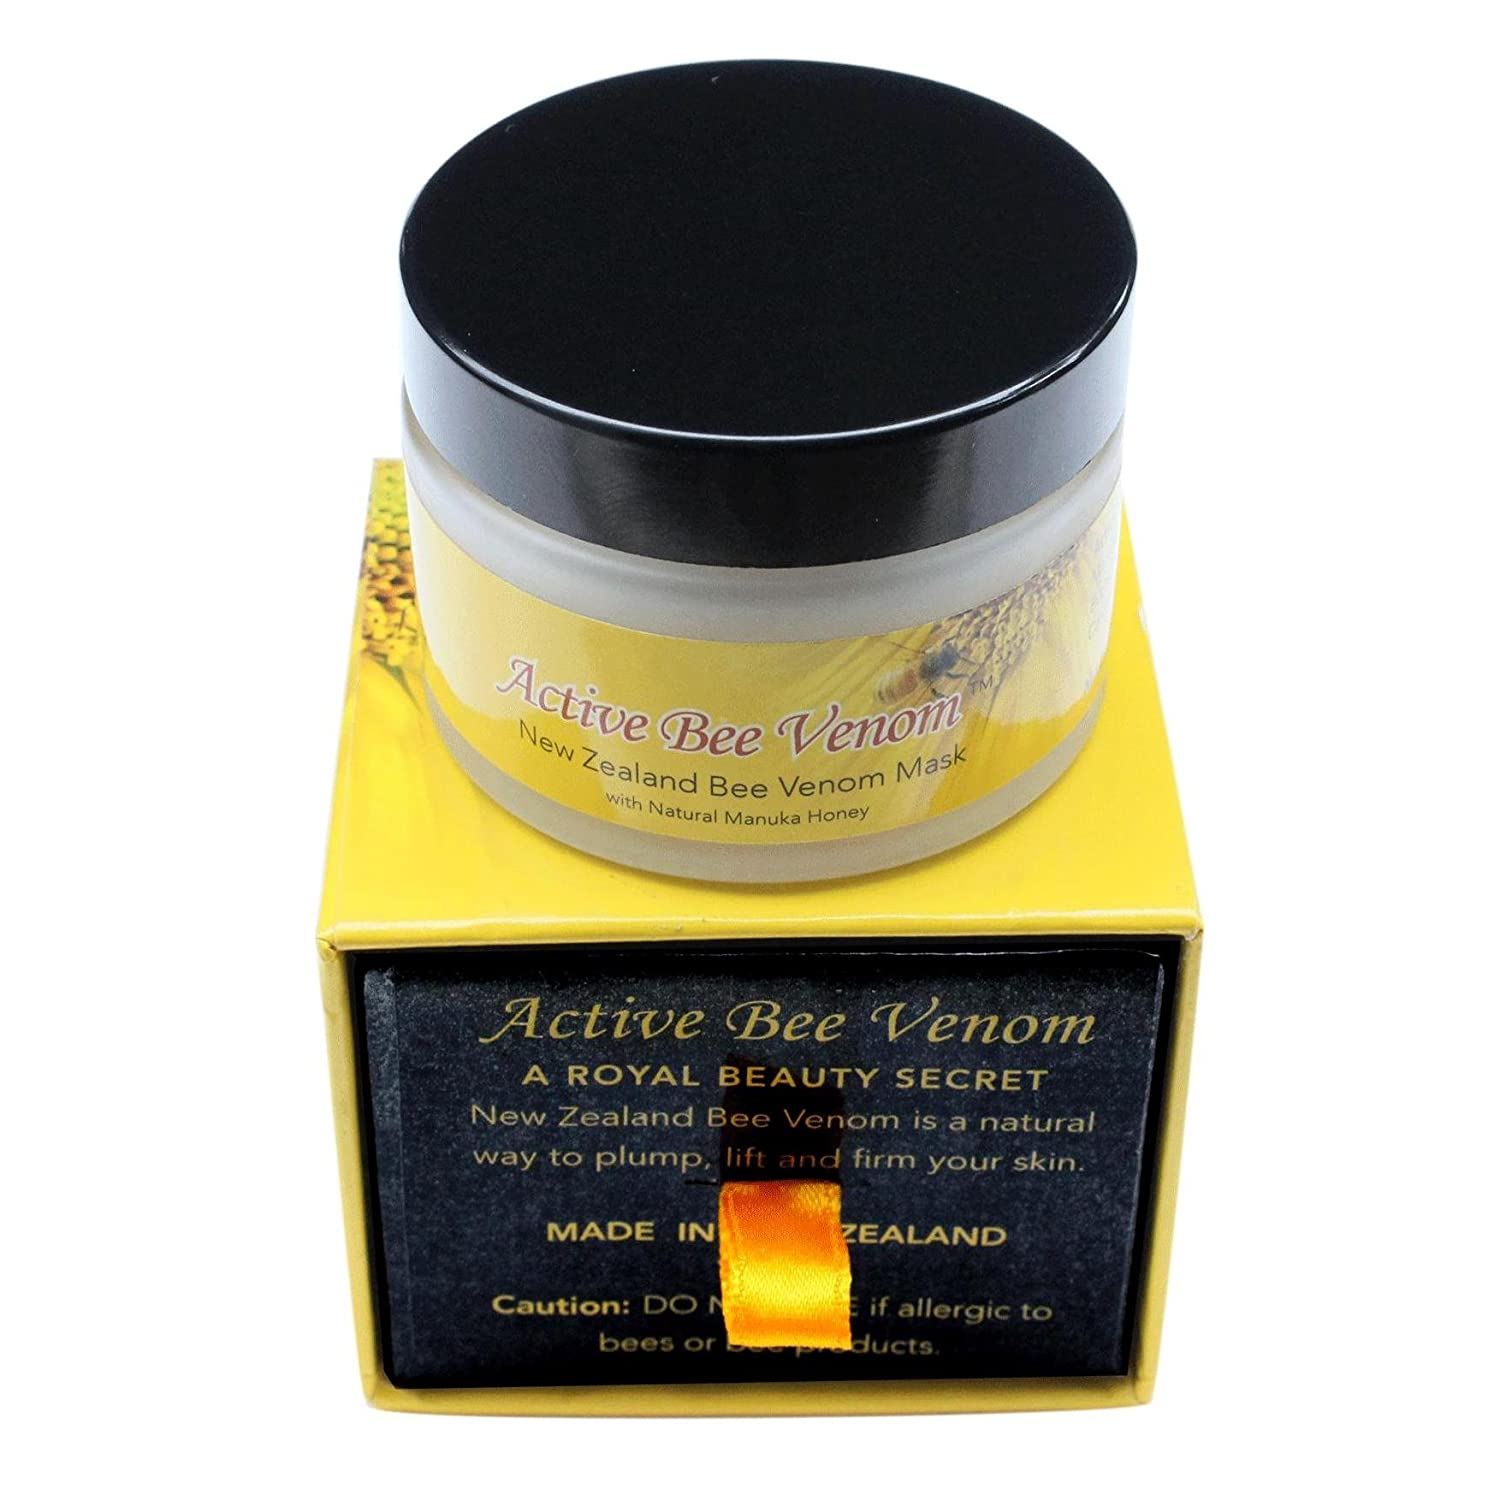 Amazon.com : Anti Aging Face Cream for Women - New Zealand Active Bee Venom 50g x 2 Jars : Beauty